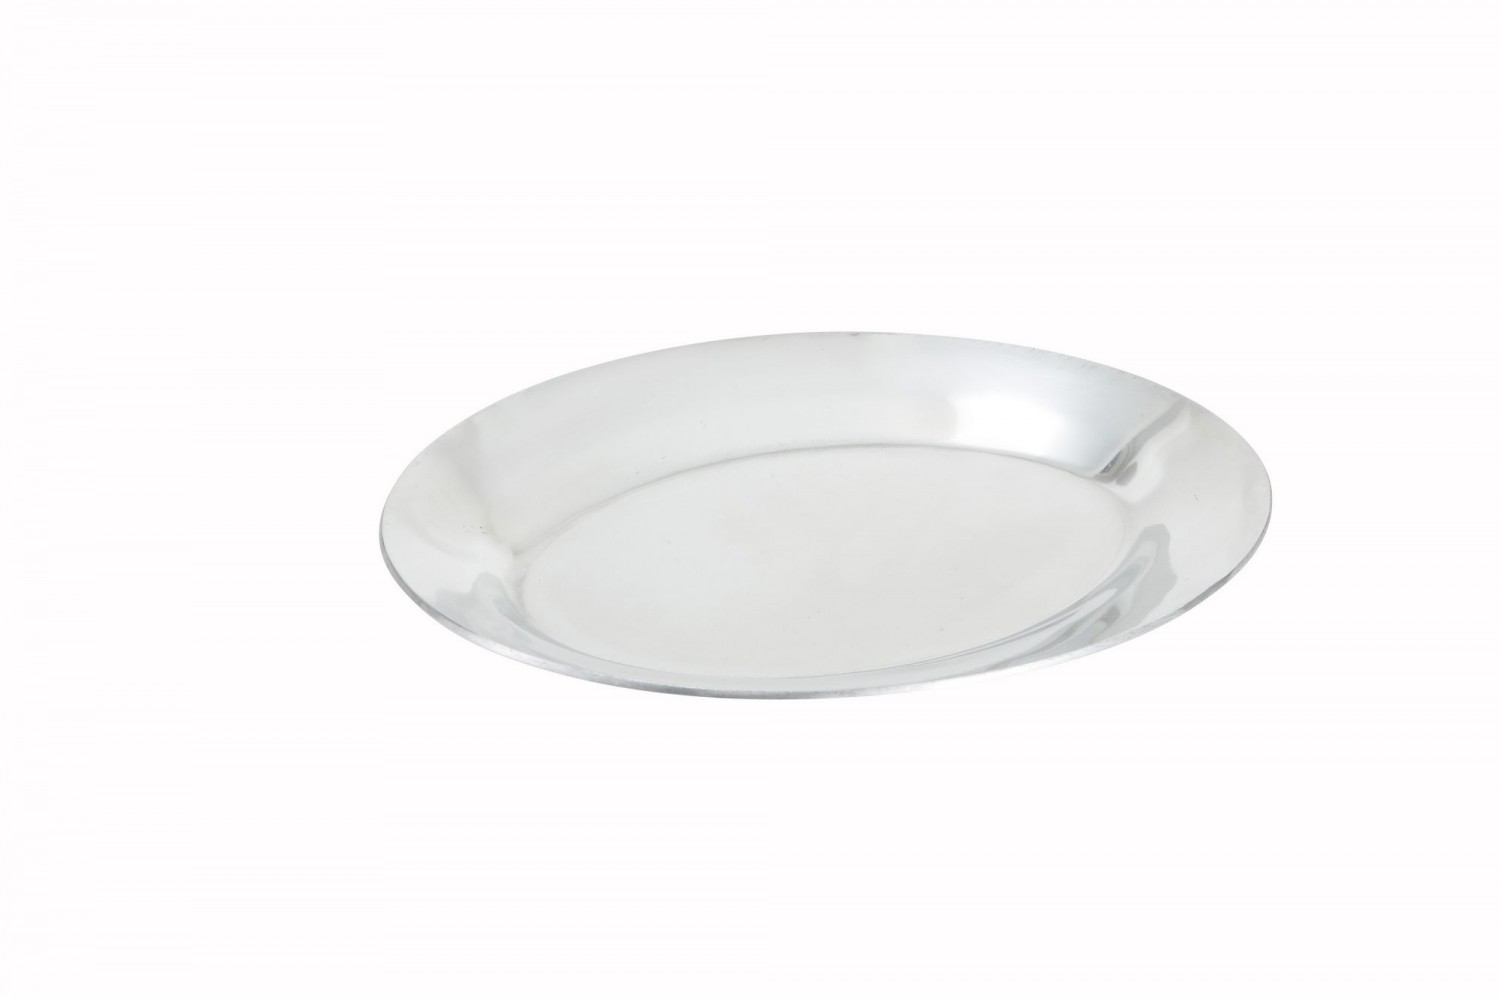 Winco APL-11 Aluminum Oval Sizzling Platter 11